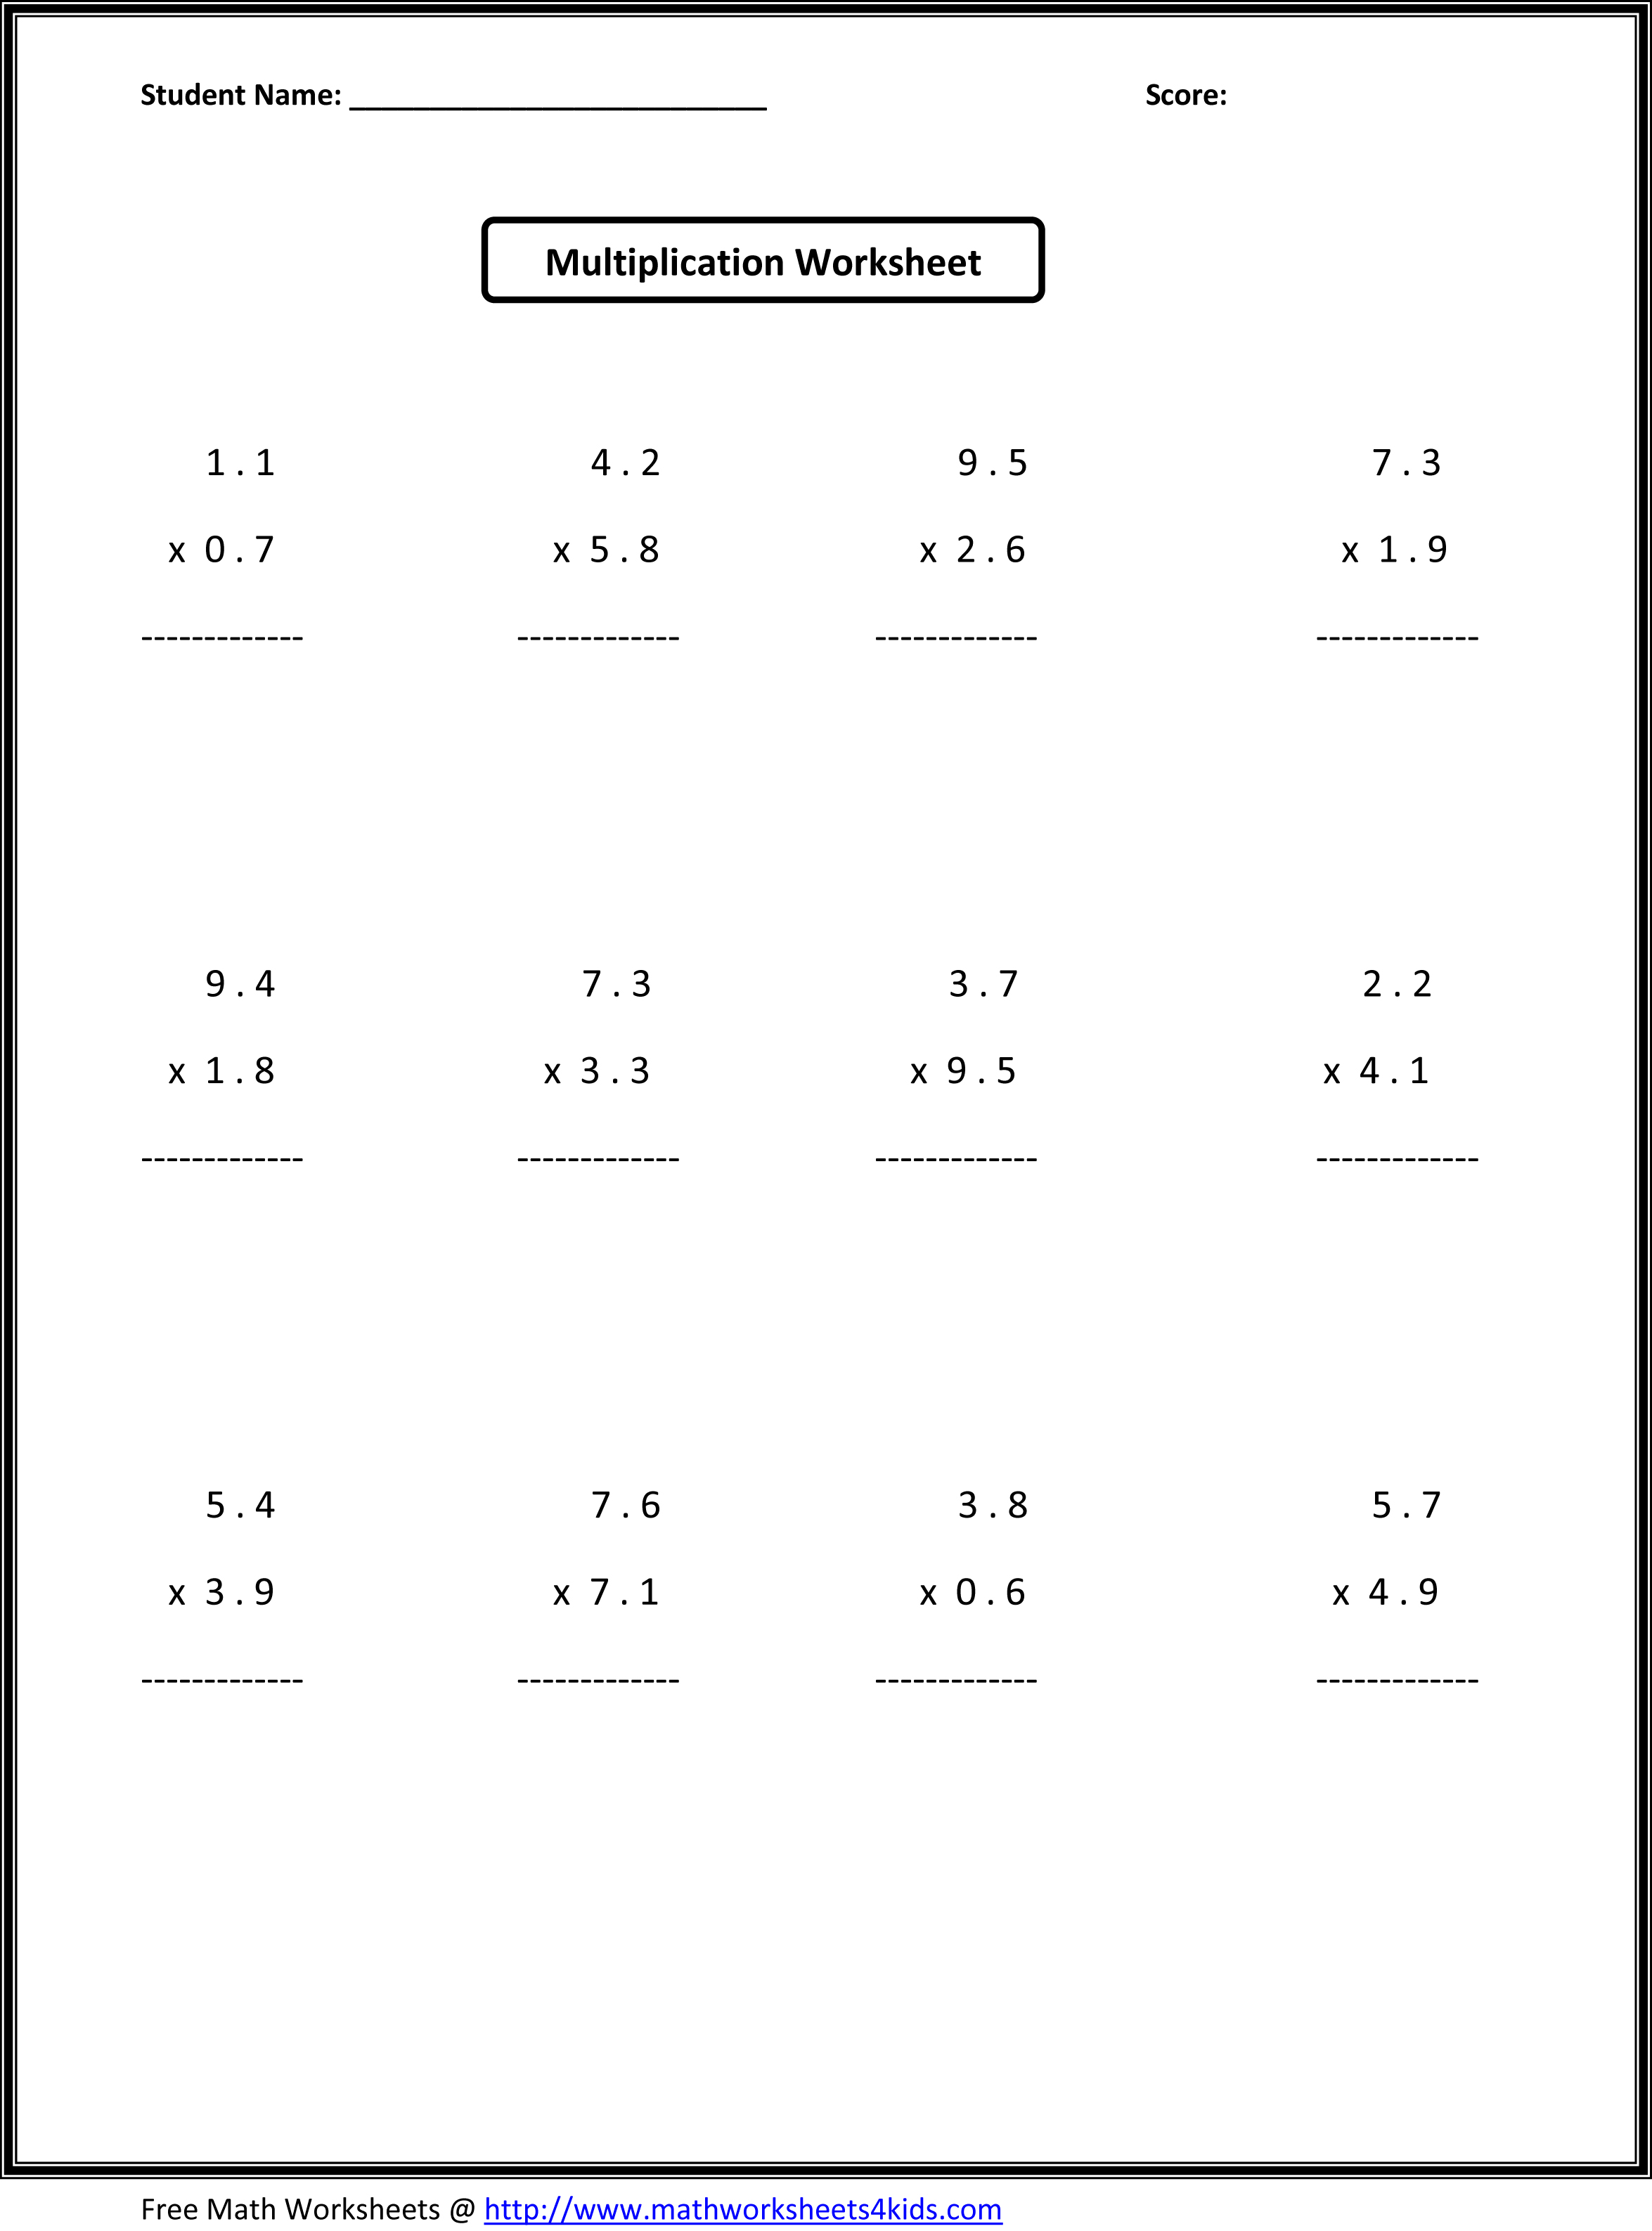 Worksheets Math Worksheets For Sixth Grade 6th grade math worksheets algebra abitlikethis value absolute based on basic math